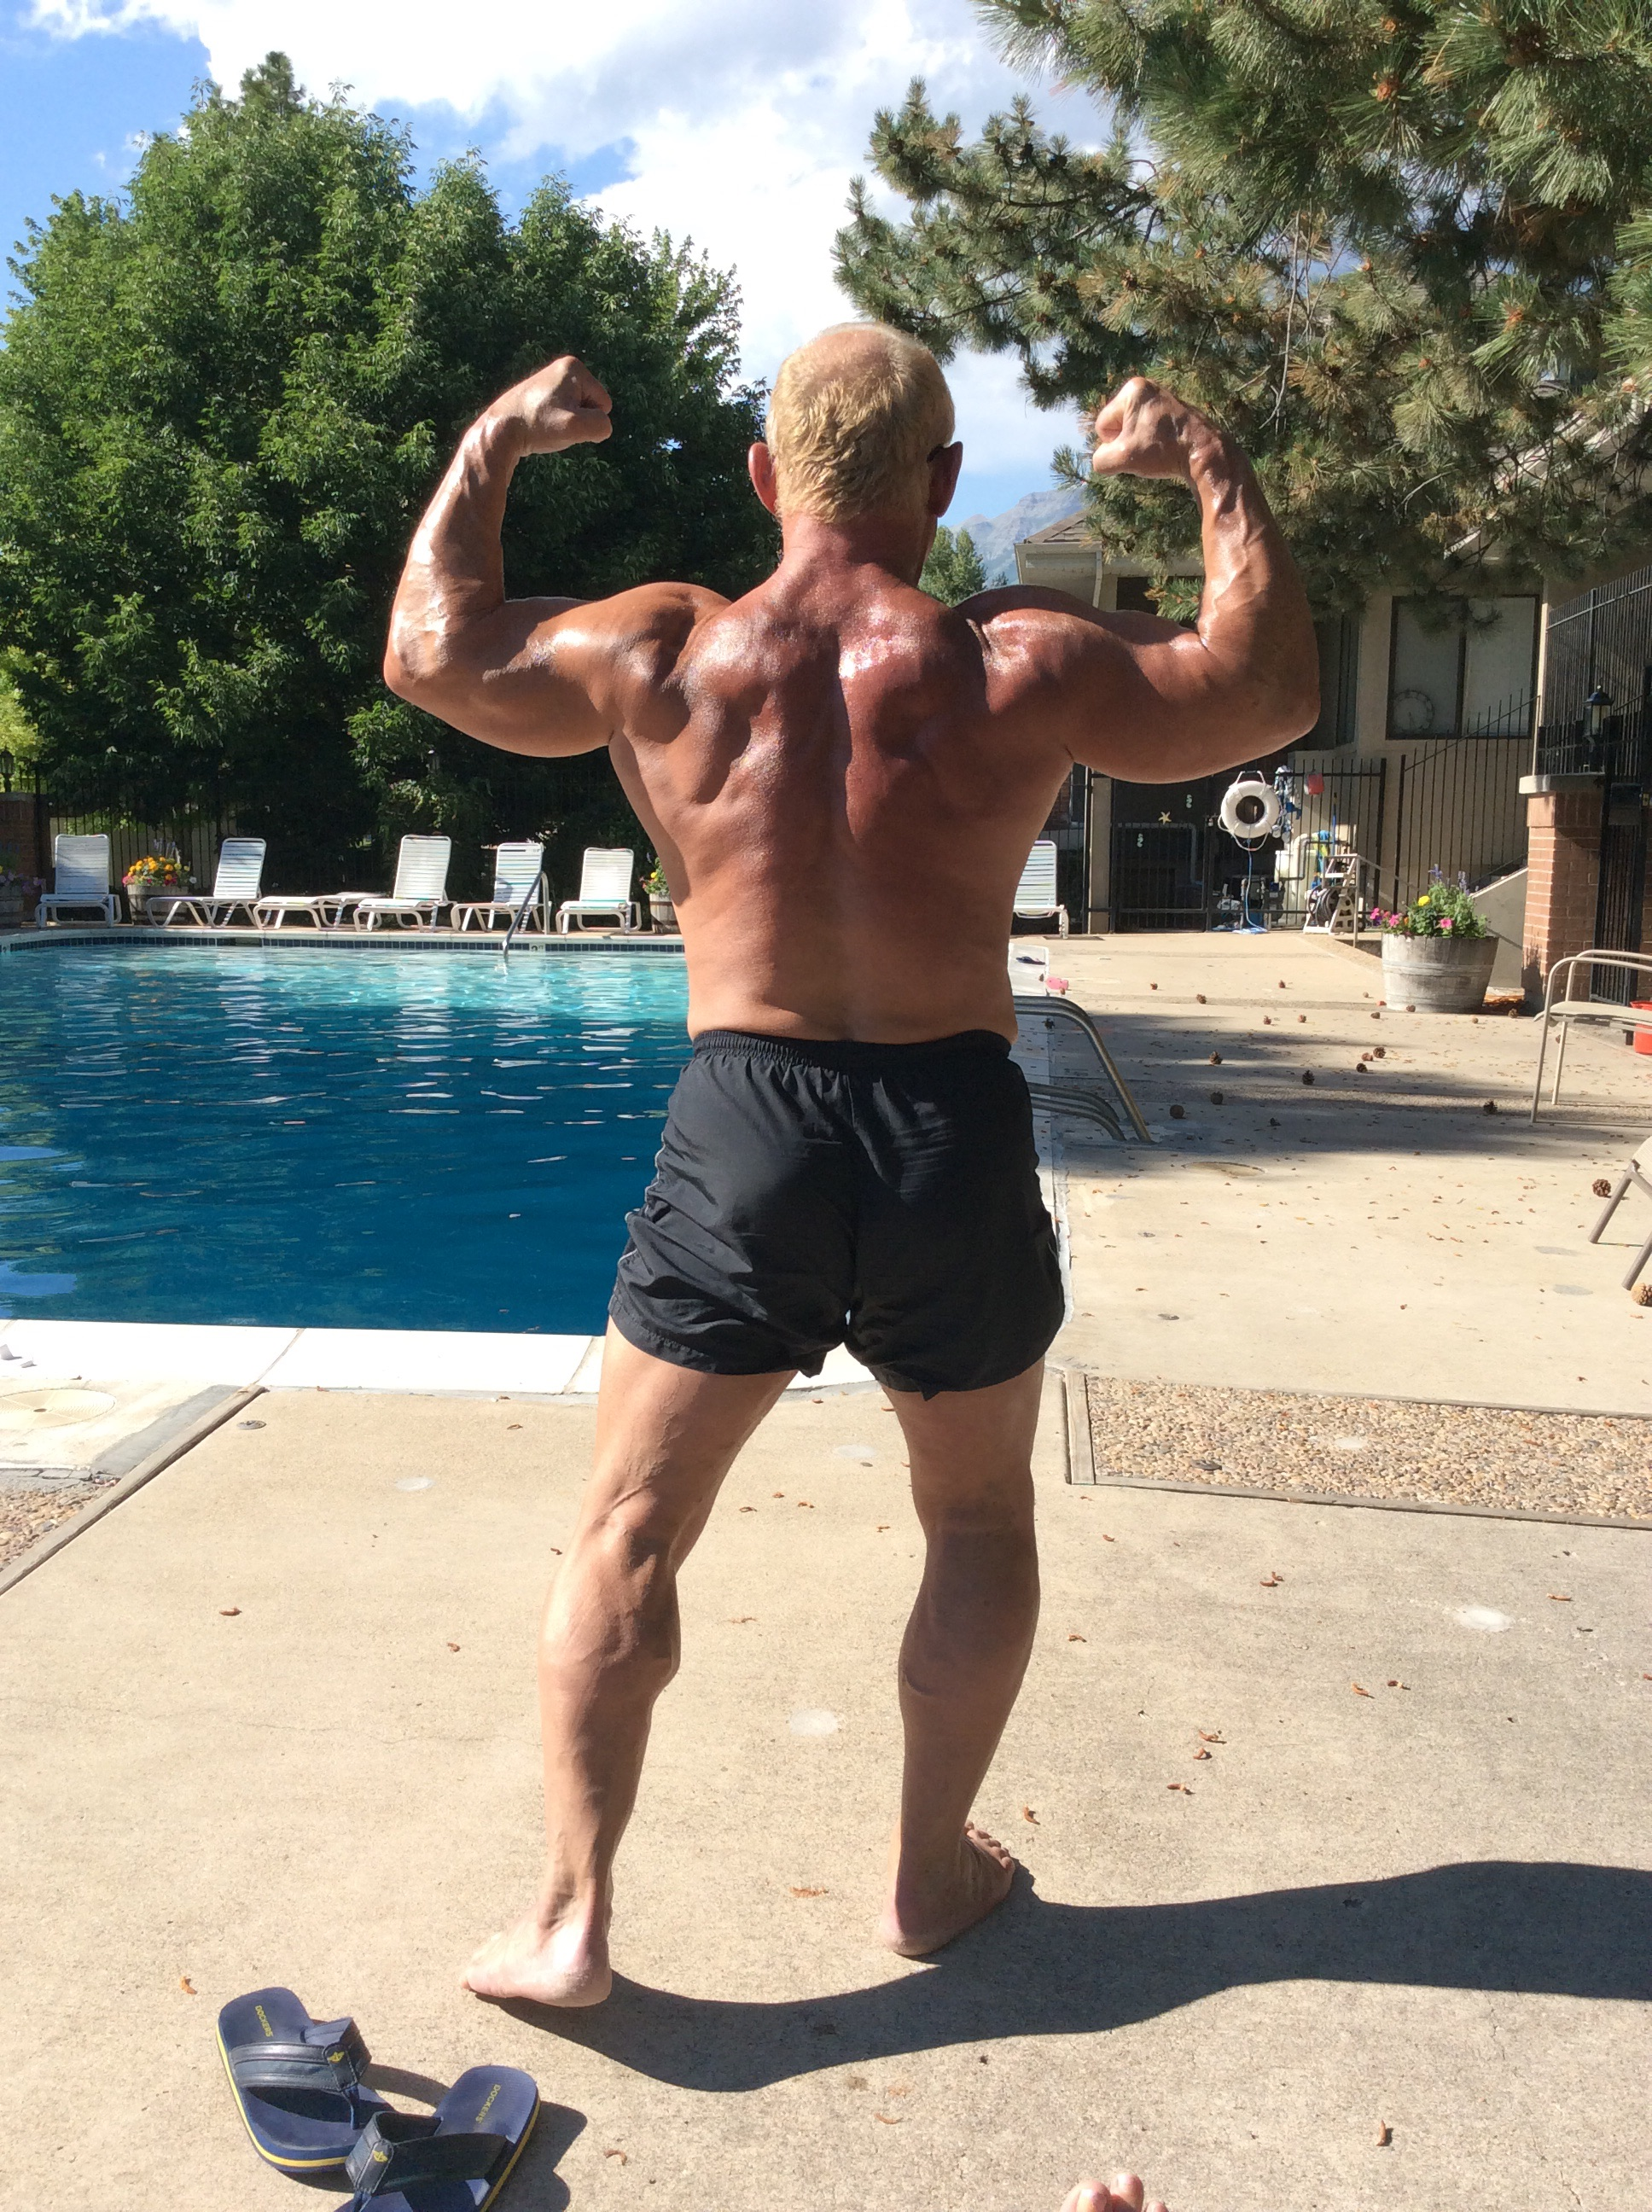 warrior focus bodybuilding workout rotation and rest in the i am a workaholic i love to train and thus my work ethic is over the top i perform a system for every body part that is designed to exhaust that